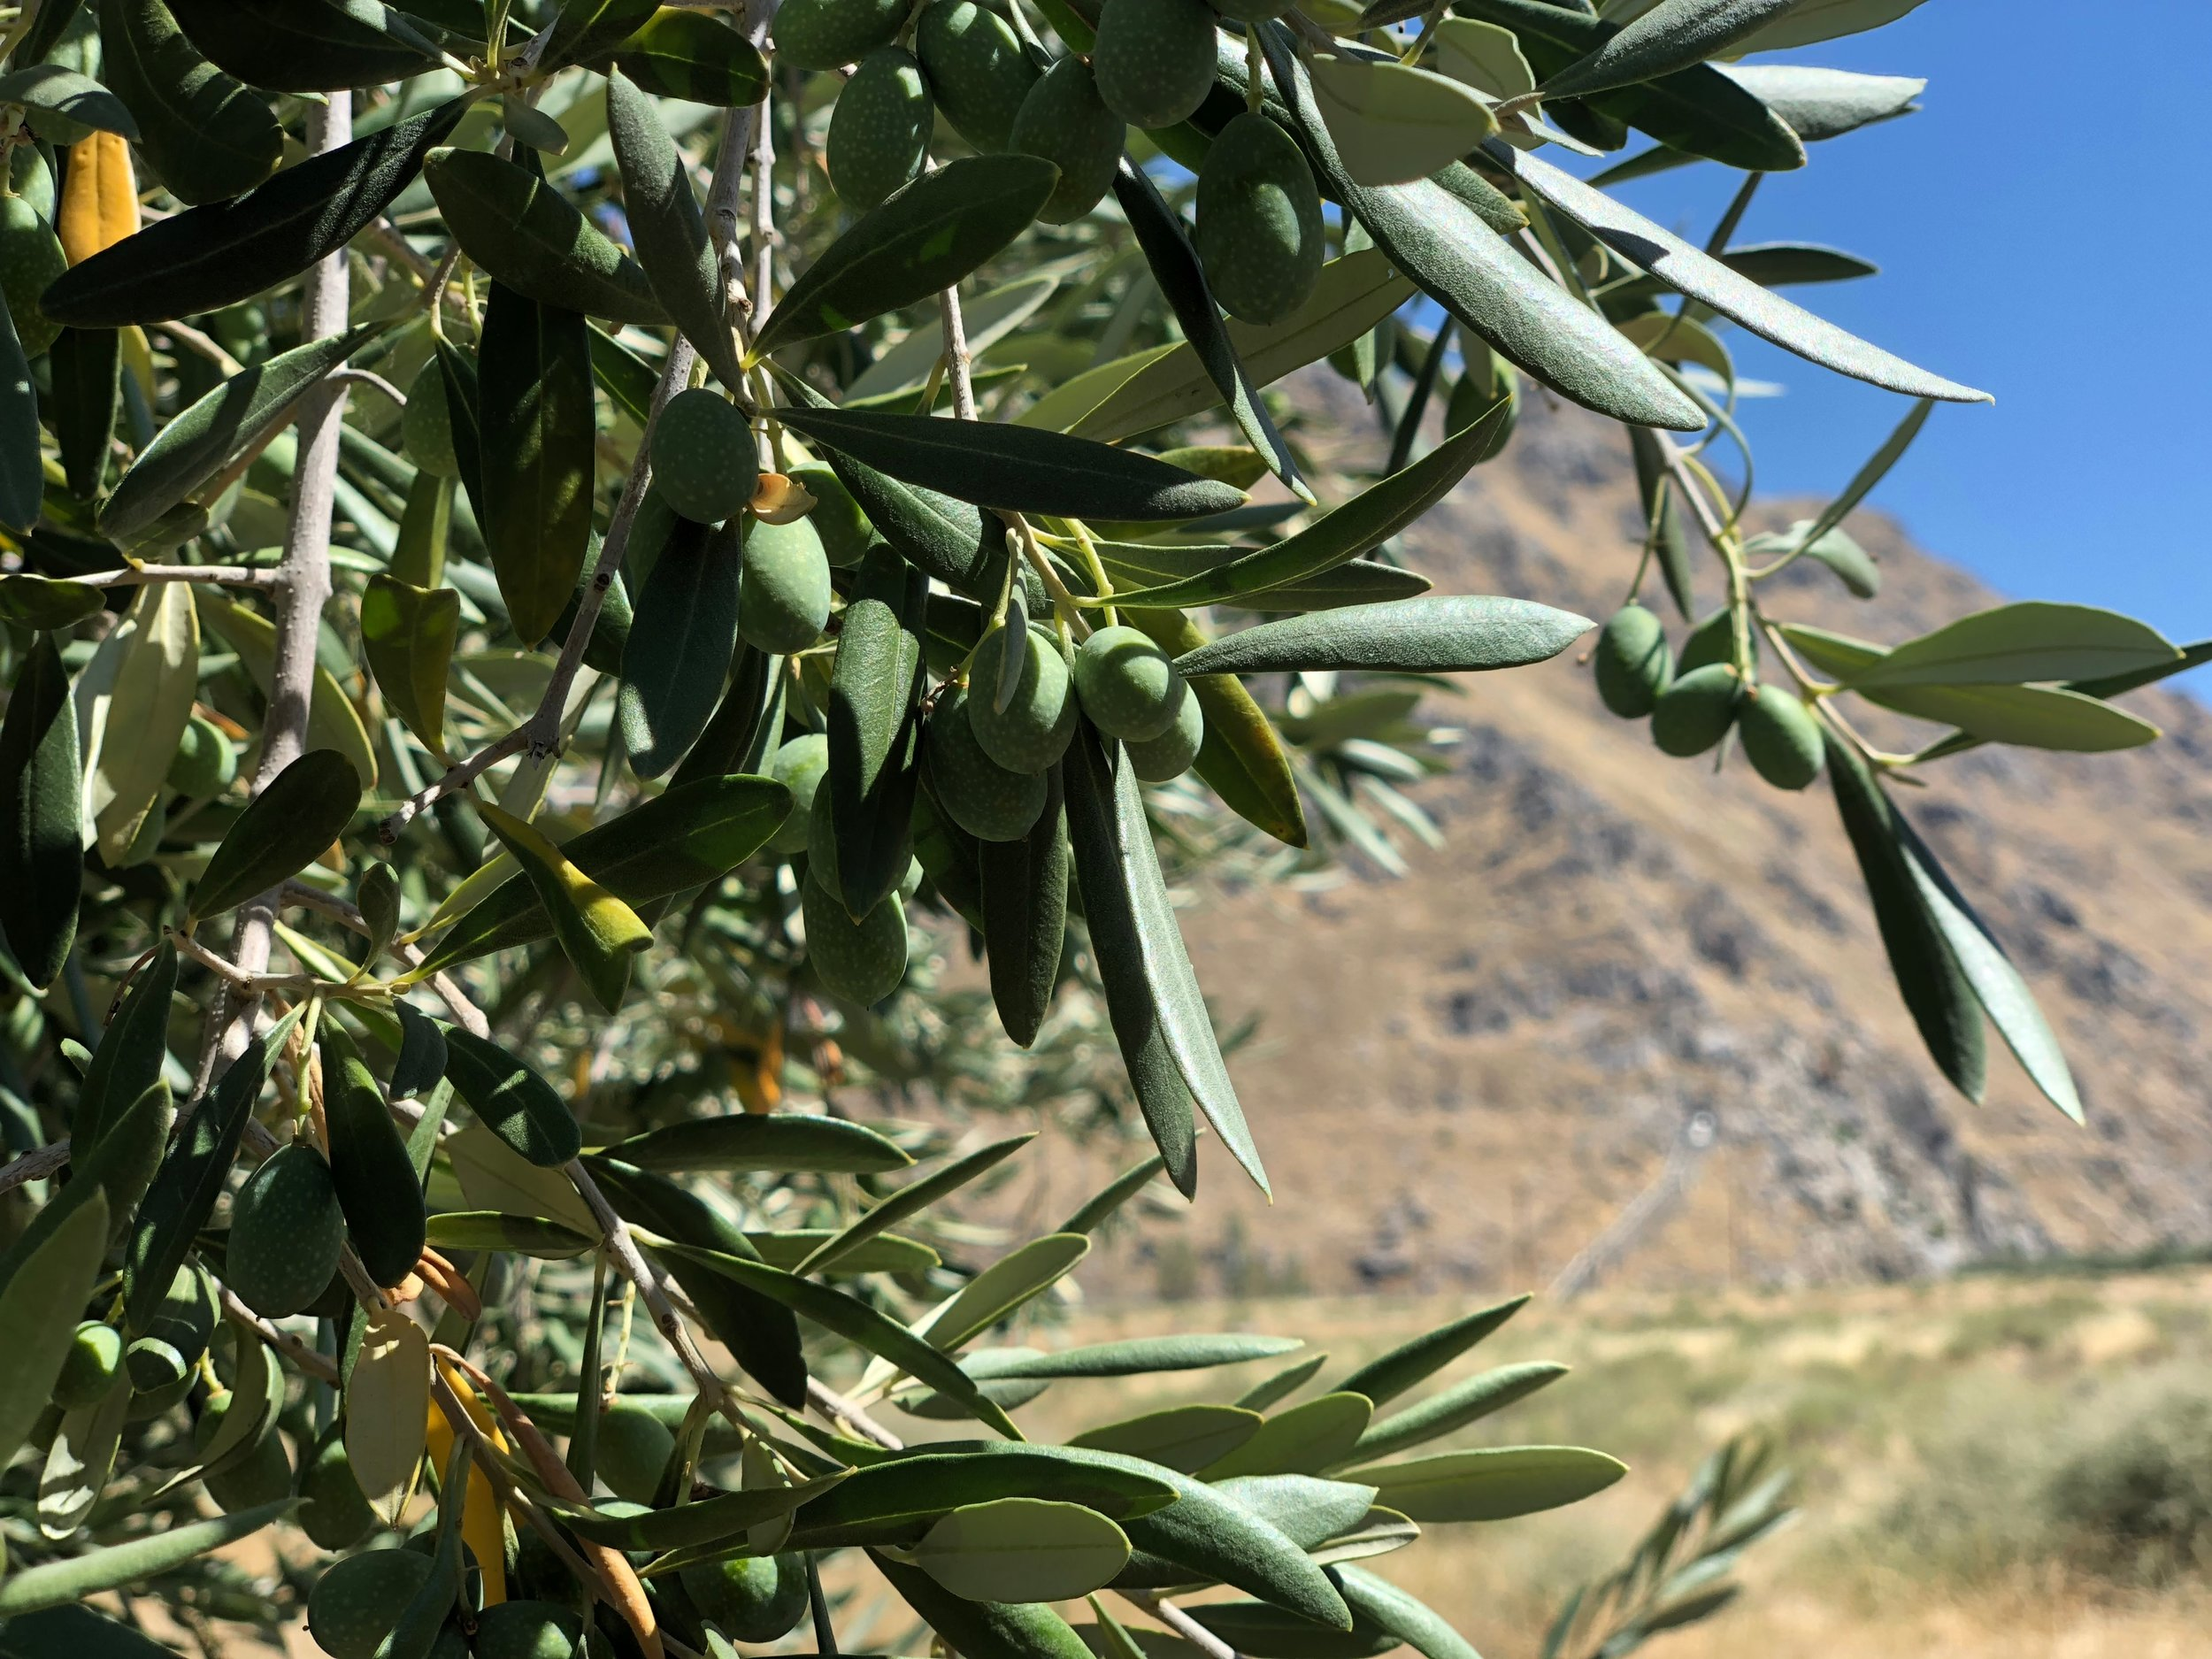 Picual olives on the tree at Rio Bravo Ranch in Bakersfield on June 29, 2019. (Noelle Carter)